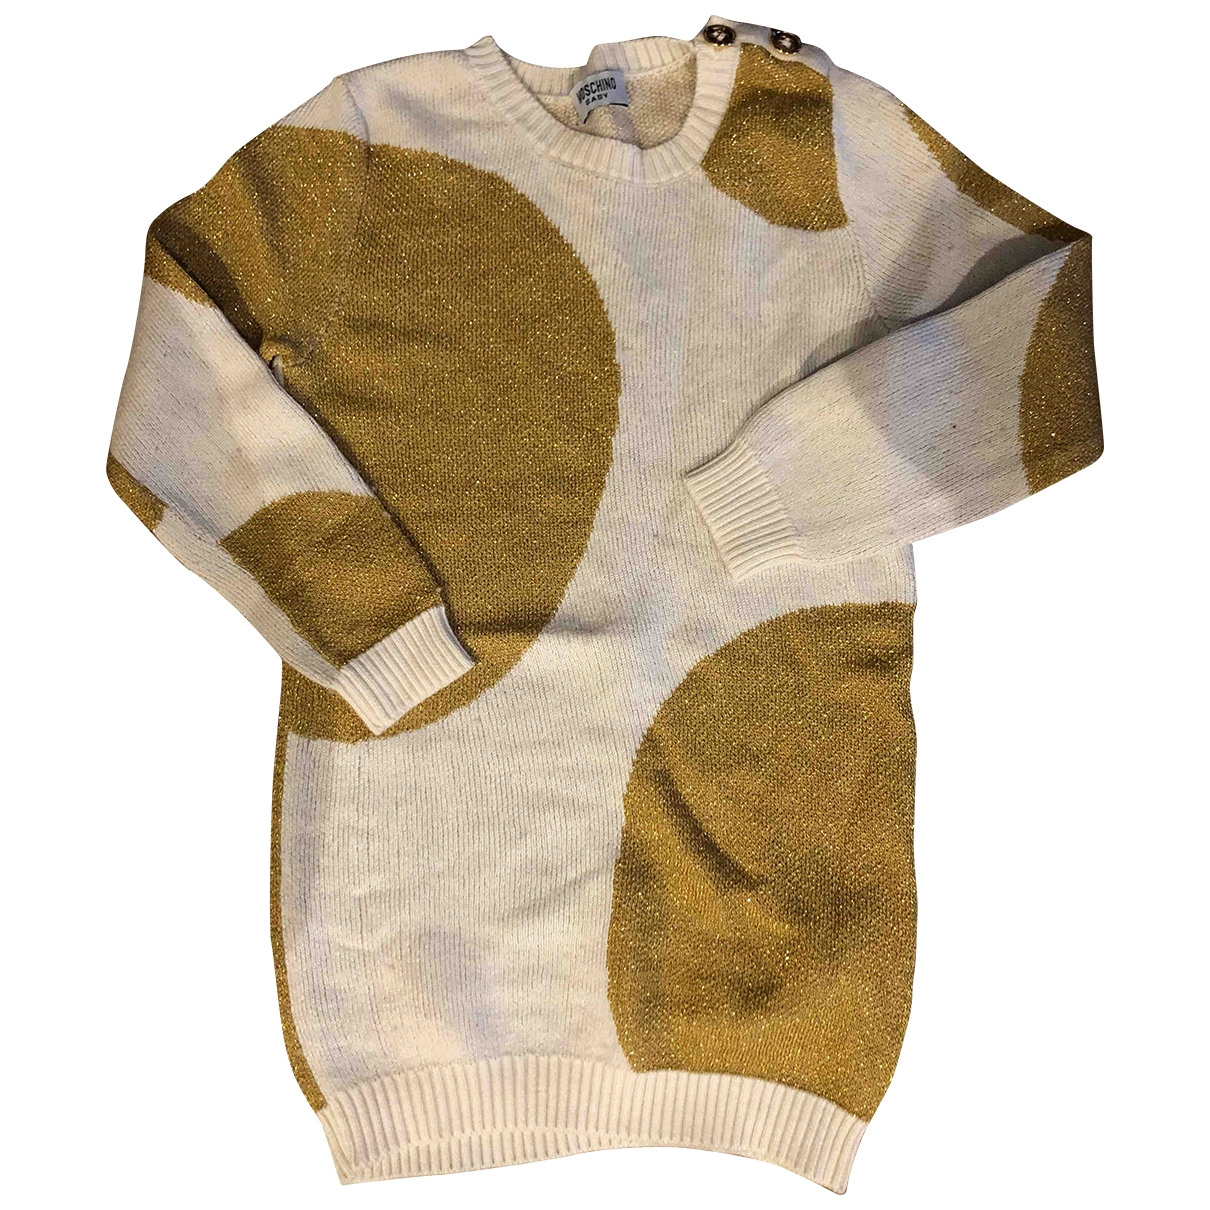 Moschino \N Beige dress for Kids 18 months - up to 81cm FR